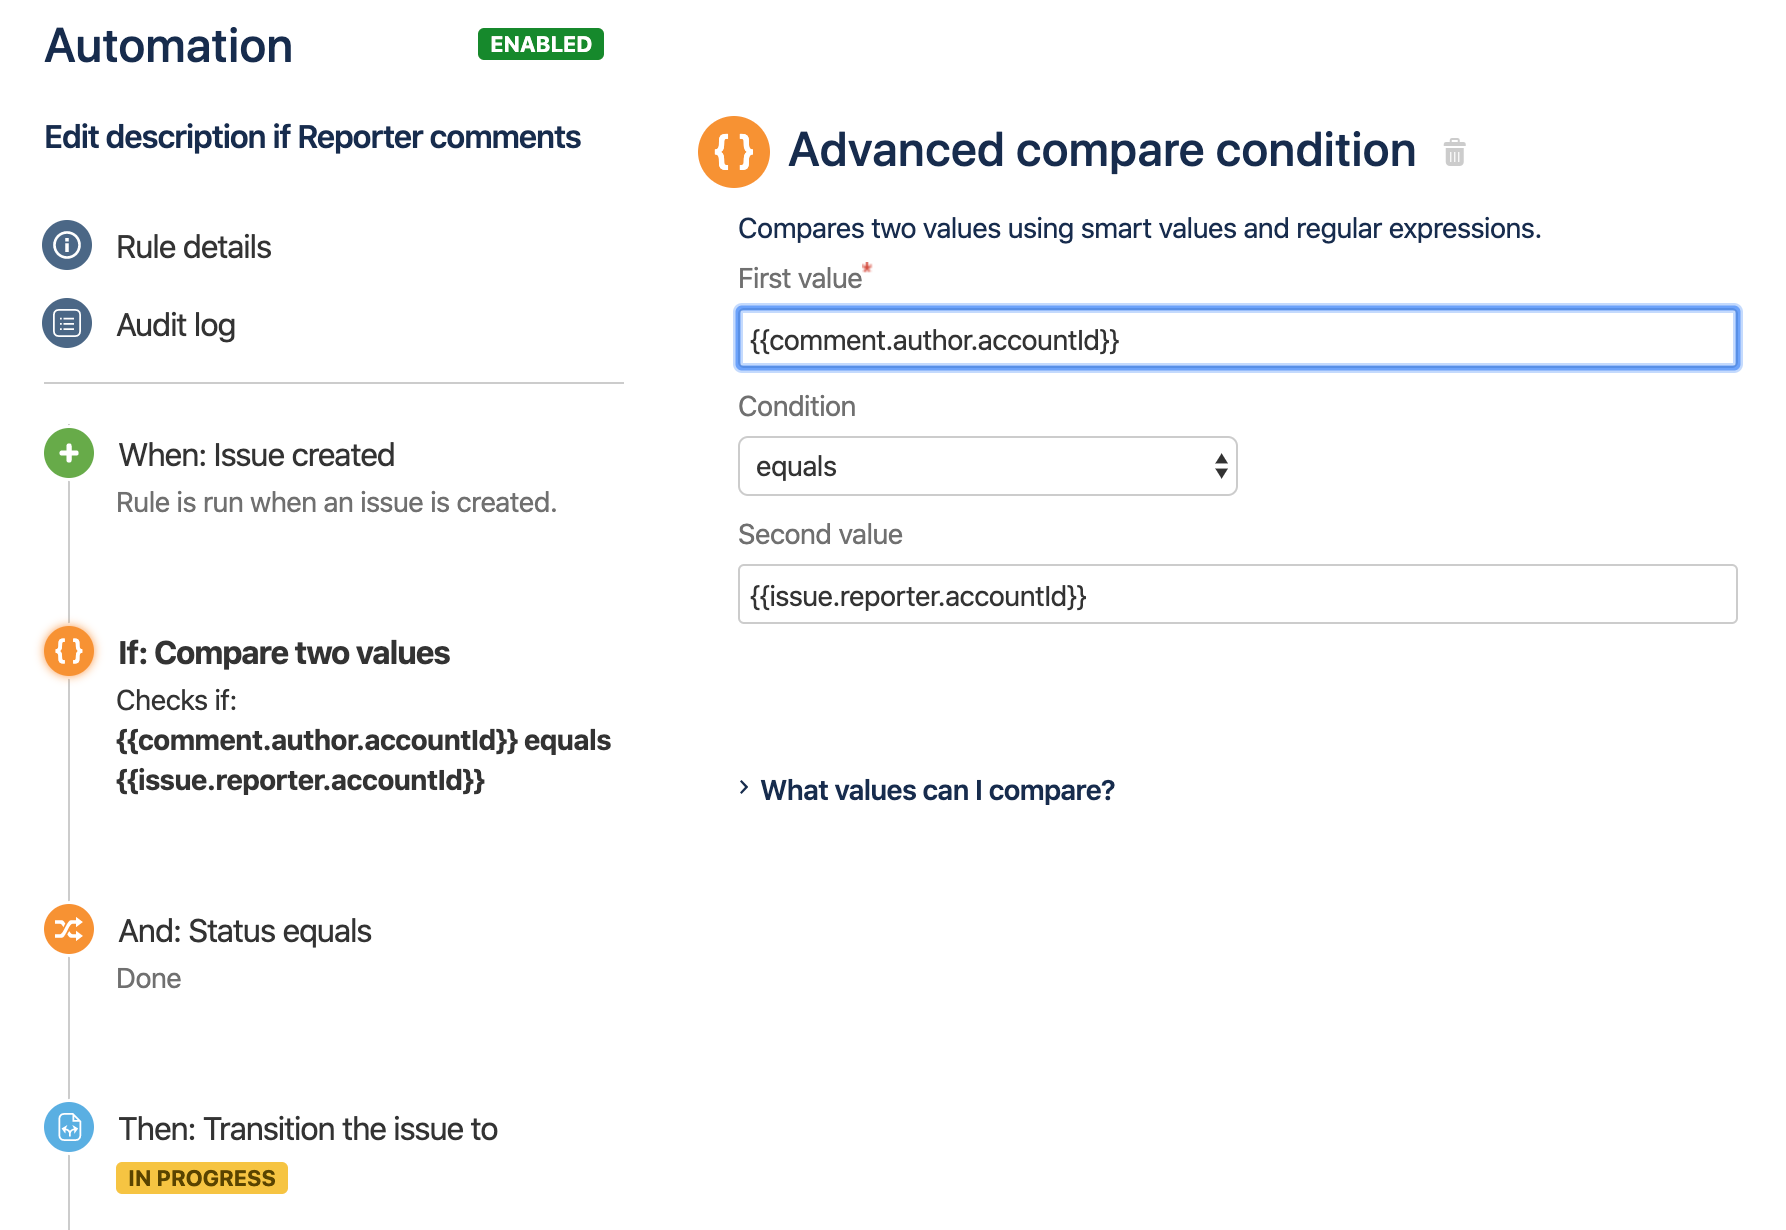 The fields available on the Advanced compare condition